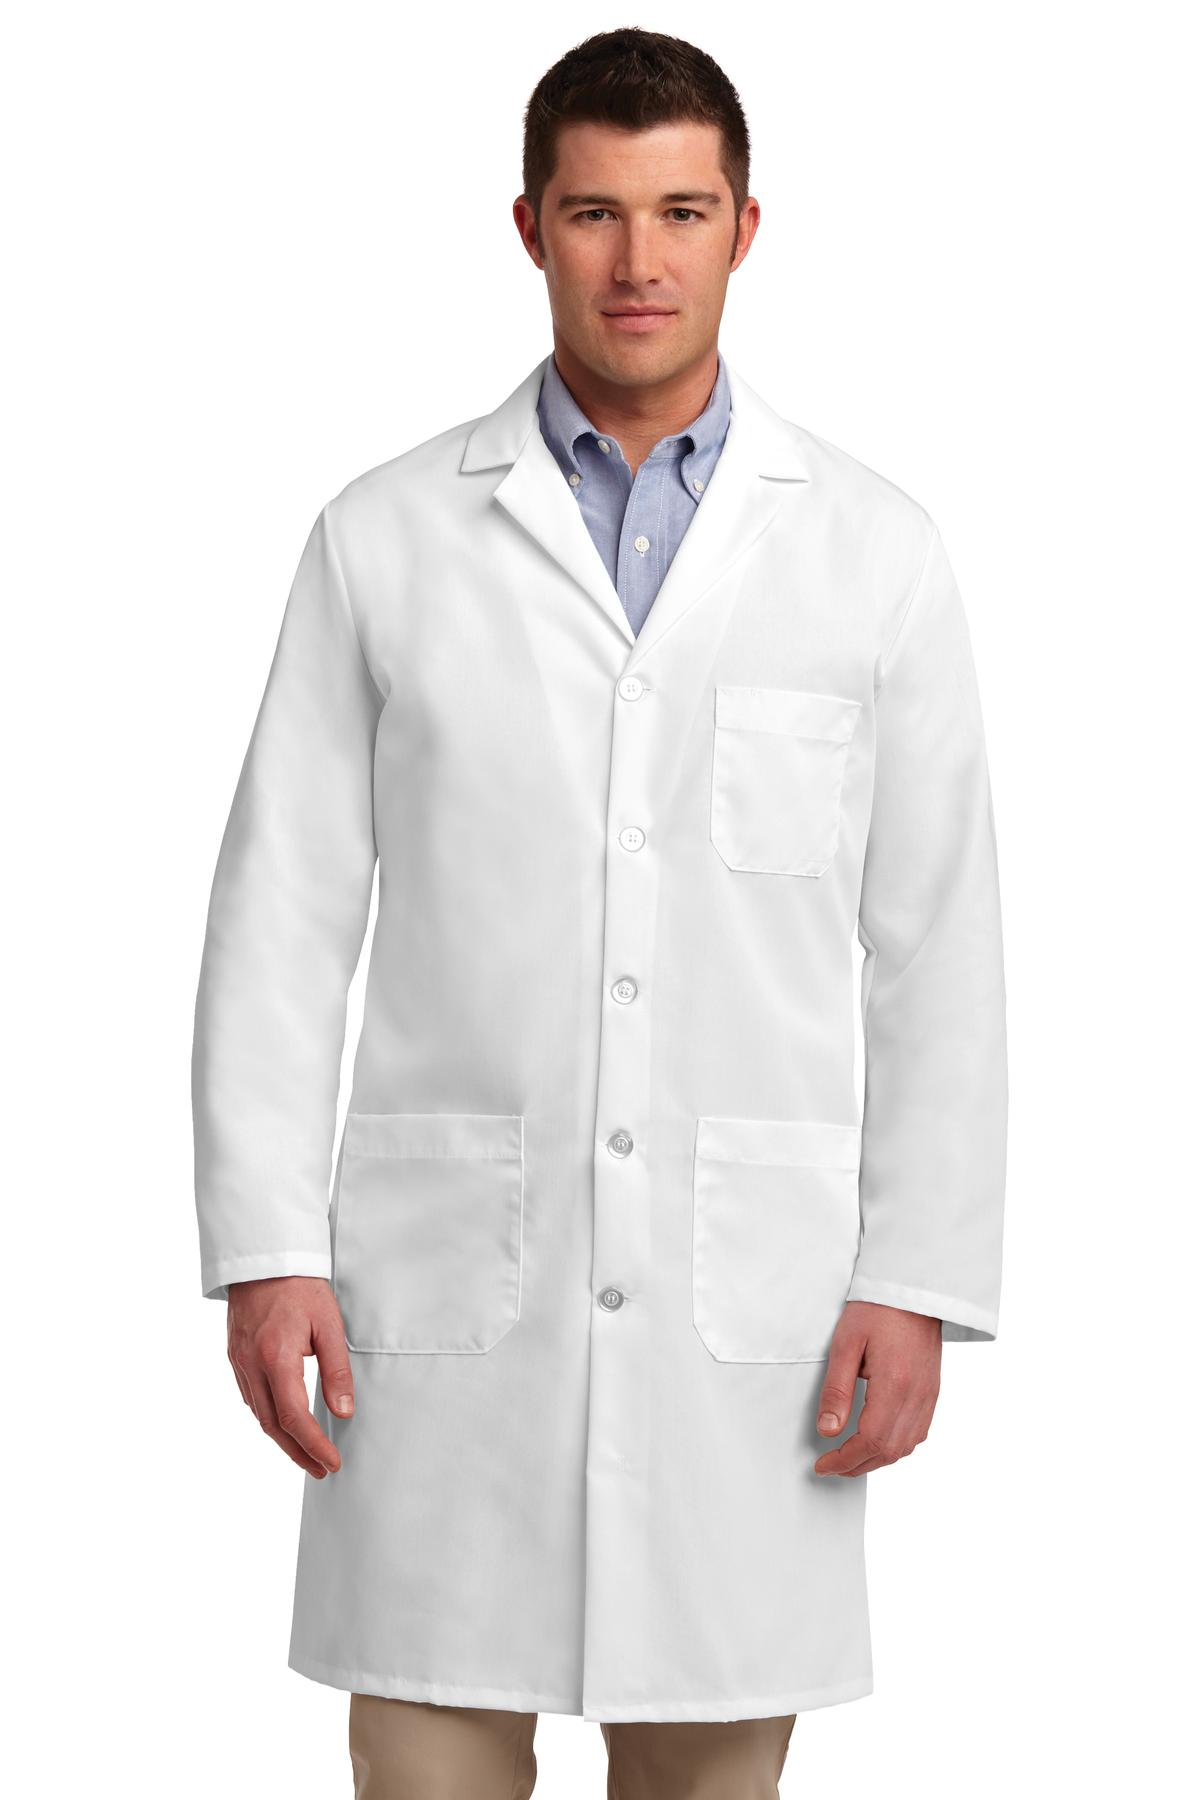 Red Kap Lab Coat. KP14